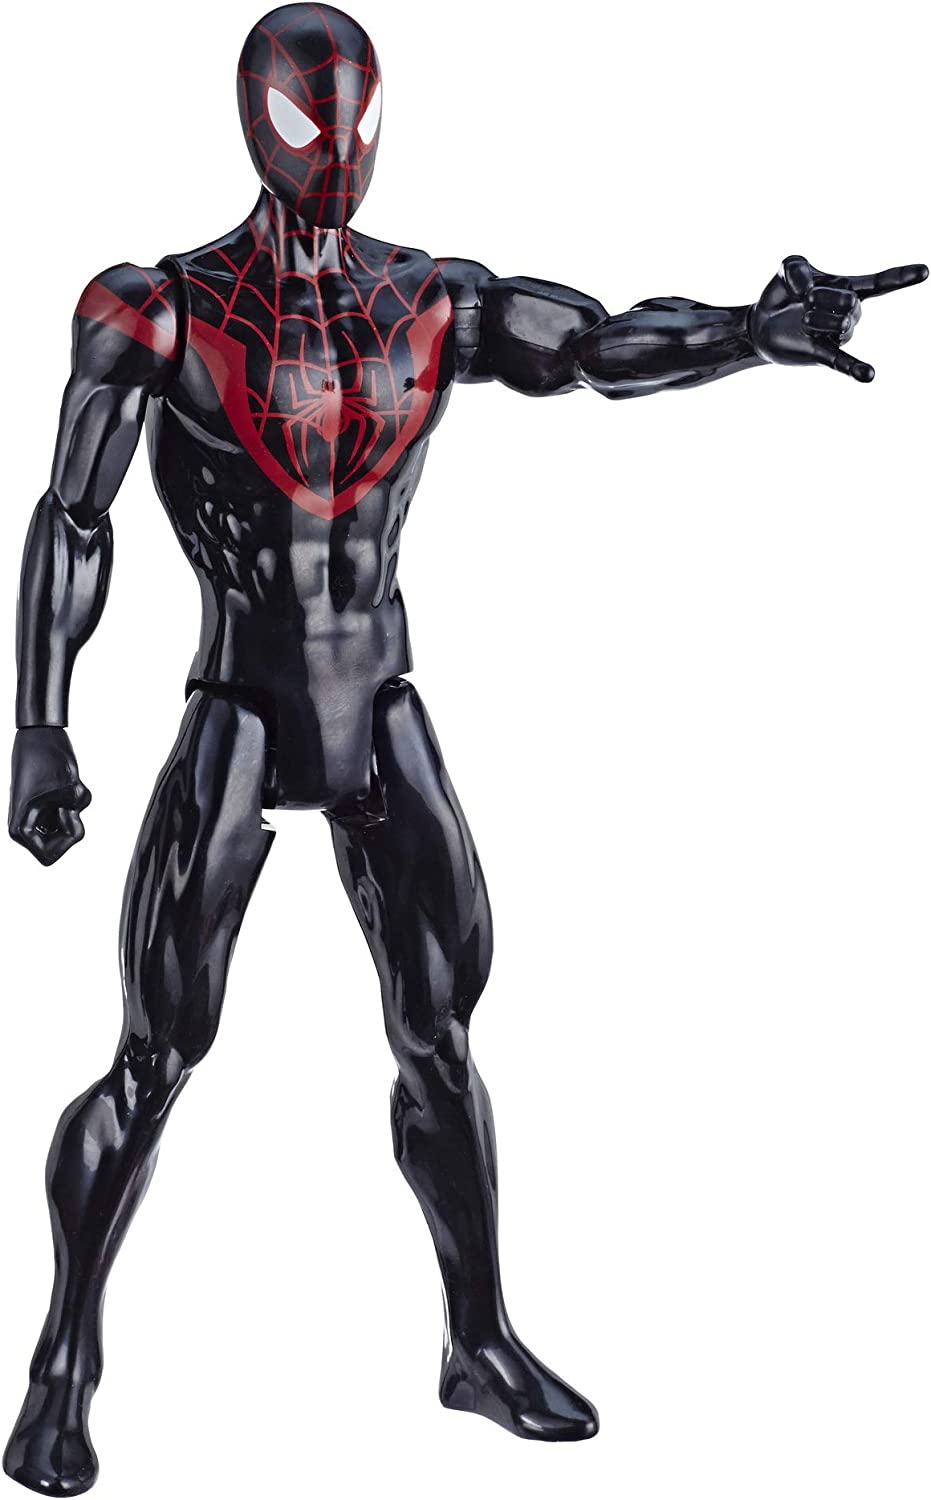 "Spider-Man Marvel Titan Hero Series Mile Morales 12""-Scale Super Hero Action Figure Toy Great Kids for Ages 4 & Up"